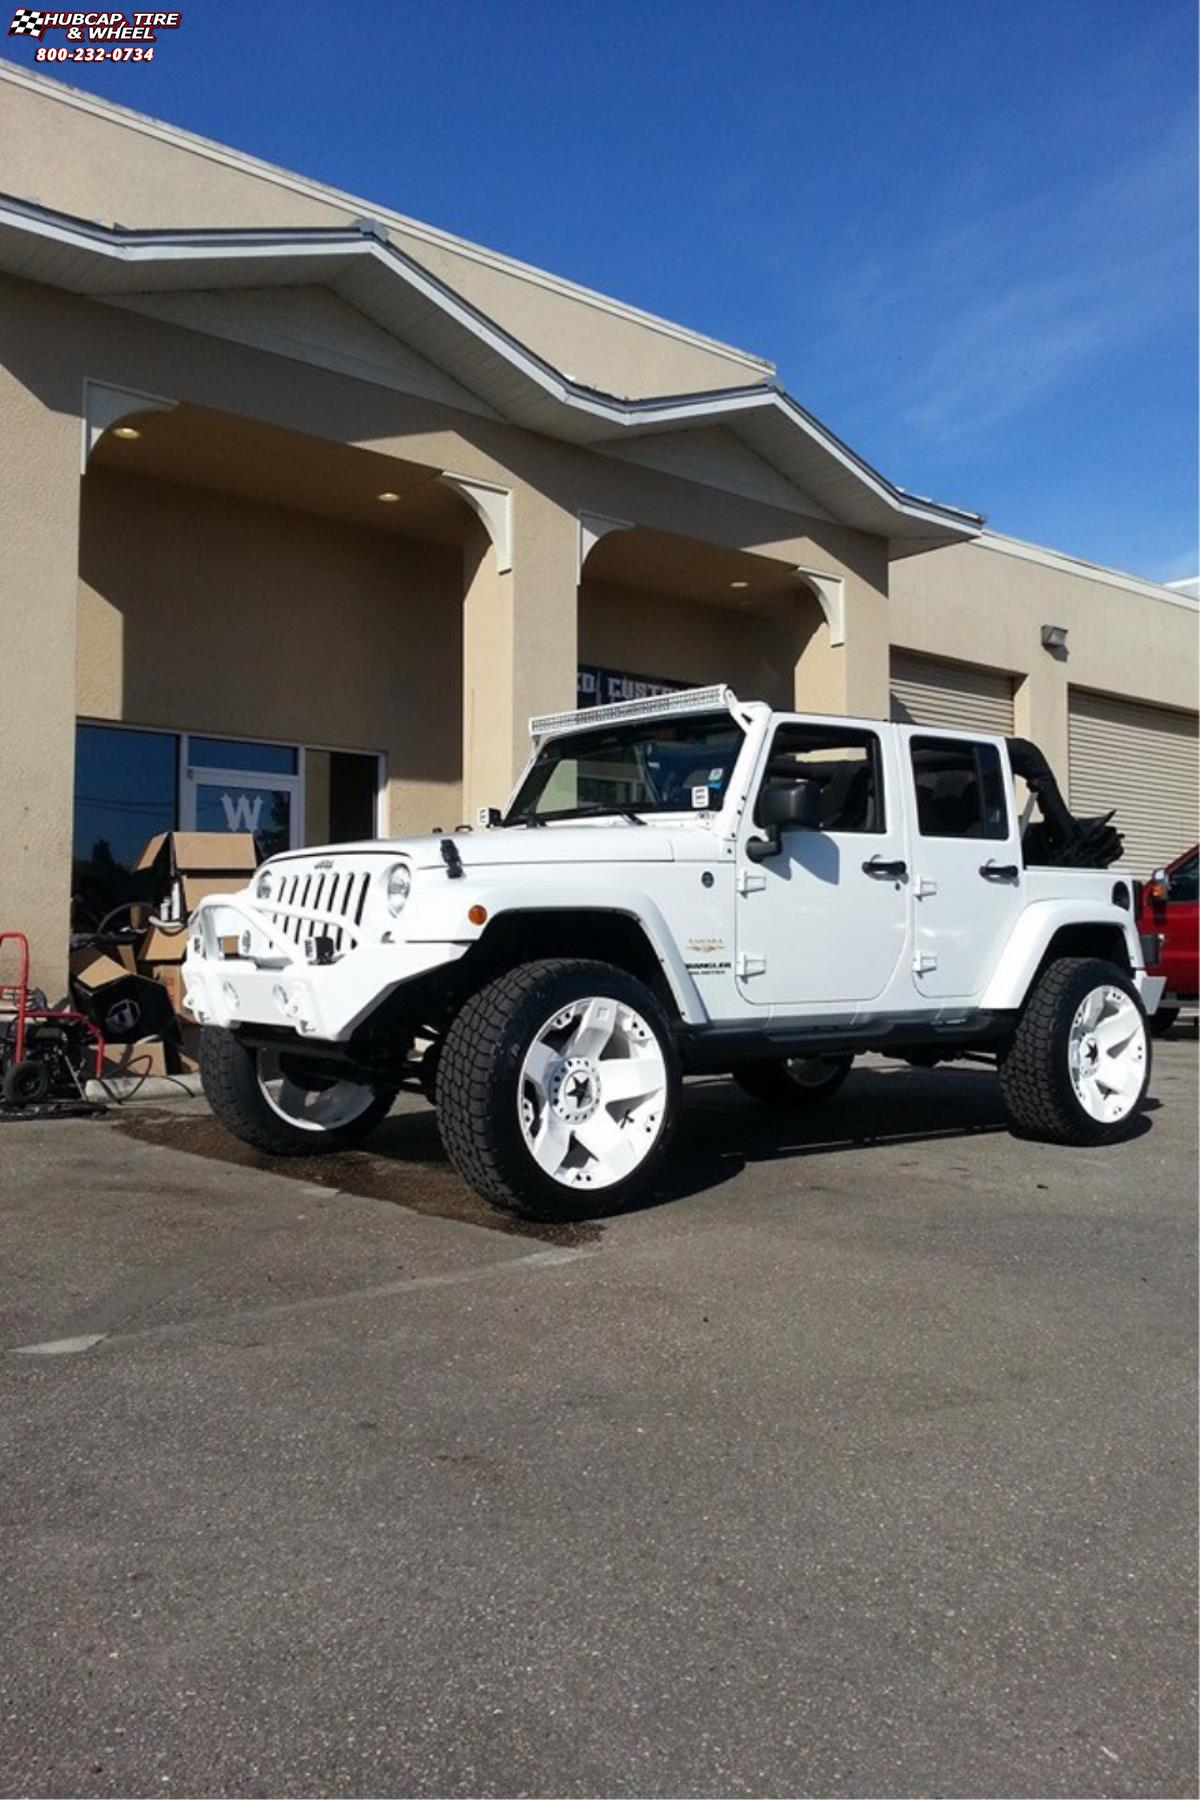 things make custom images dream love to cars this yours customized jeep white wrangler and it pinterest rjdjfejs best on